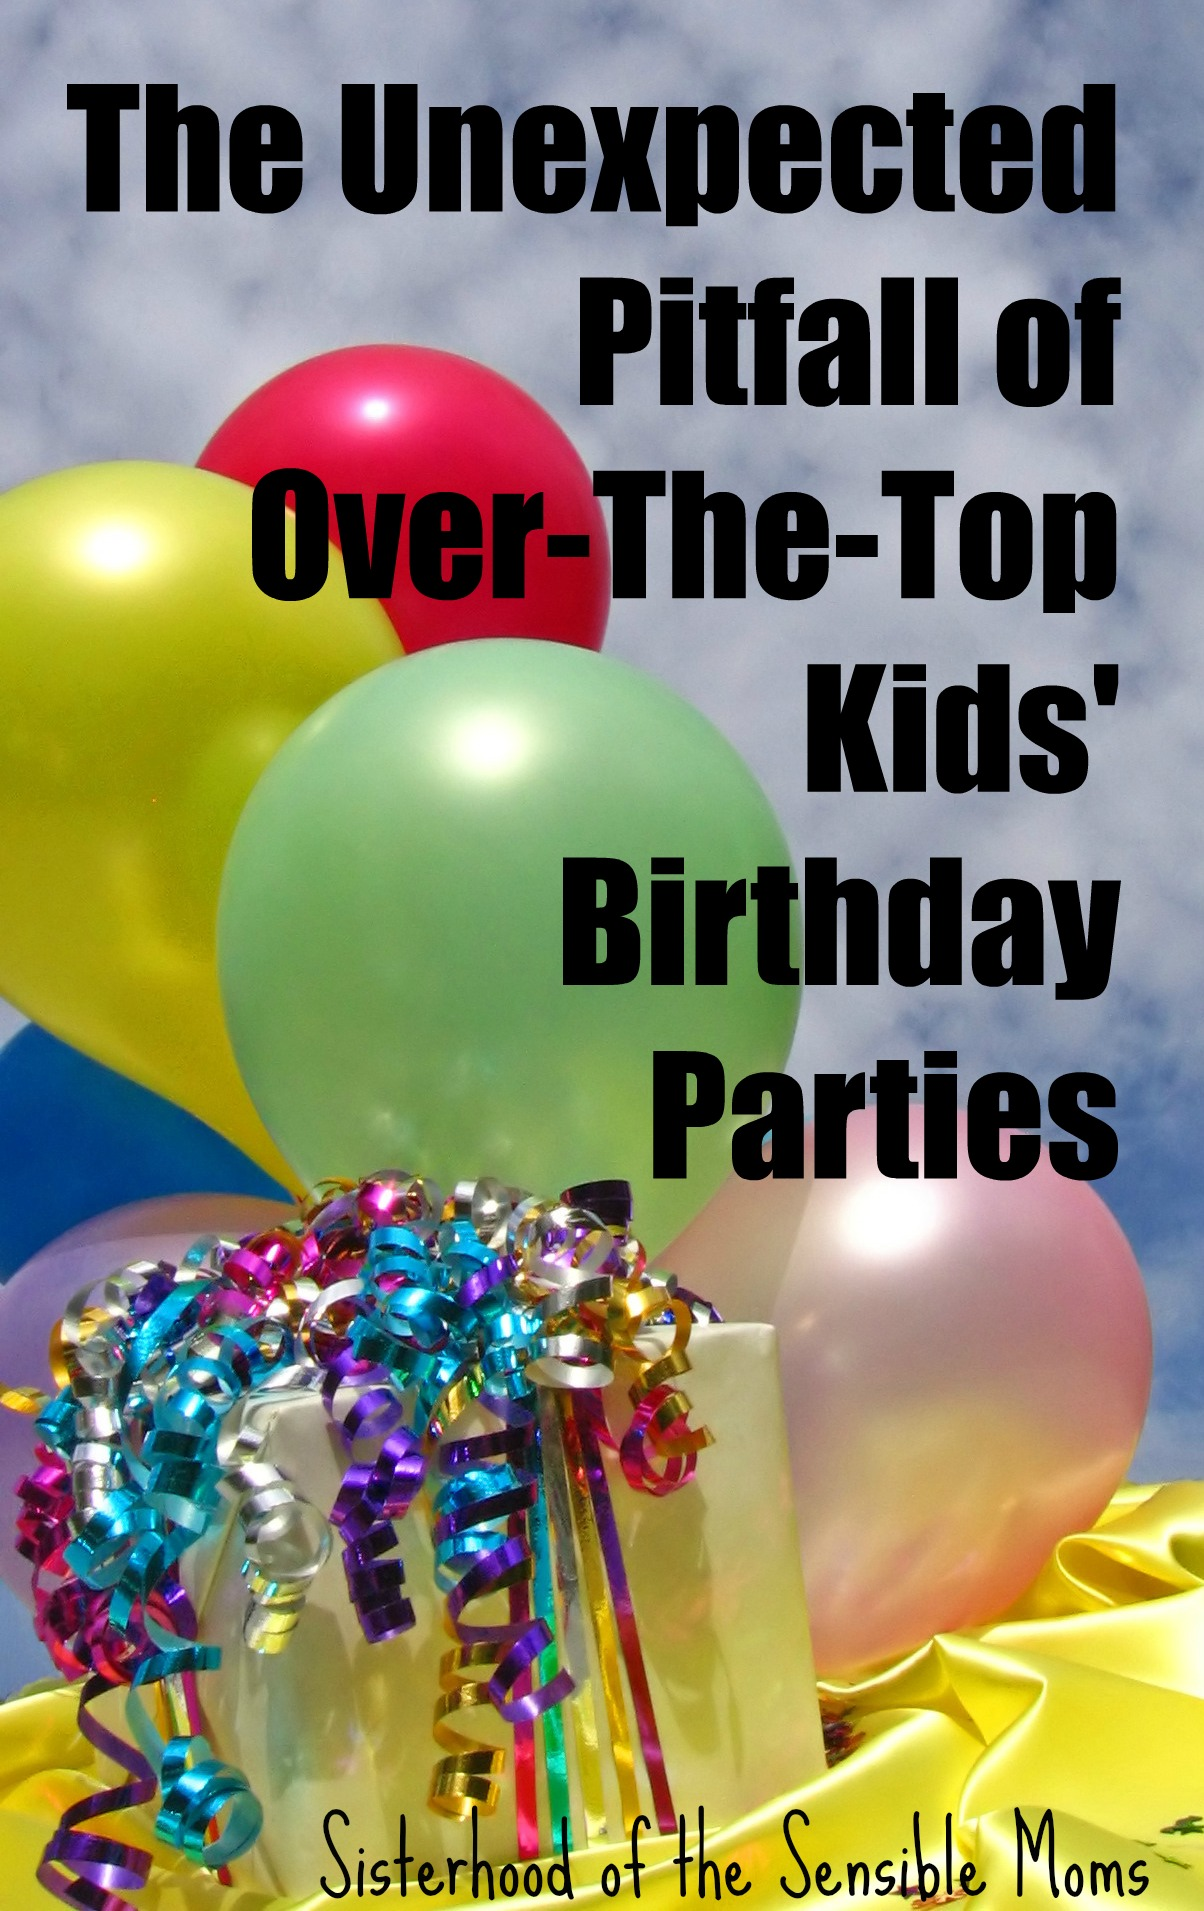 The Unexpected Pitfall of Over-The-Top Kids' Birthday Parties: It's all fun and games until it's not. Looking down the road into the future. |Parenting | Sisterhood of the Sensible Moms